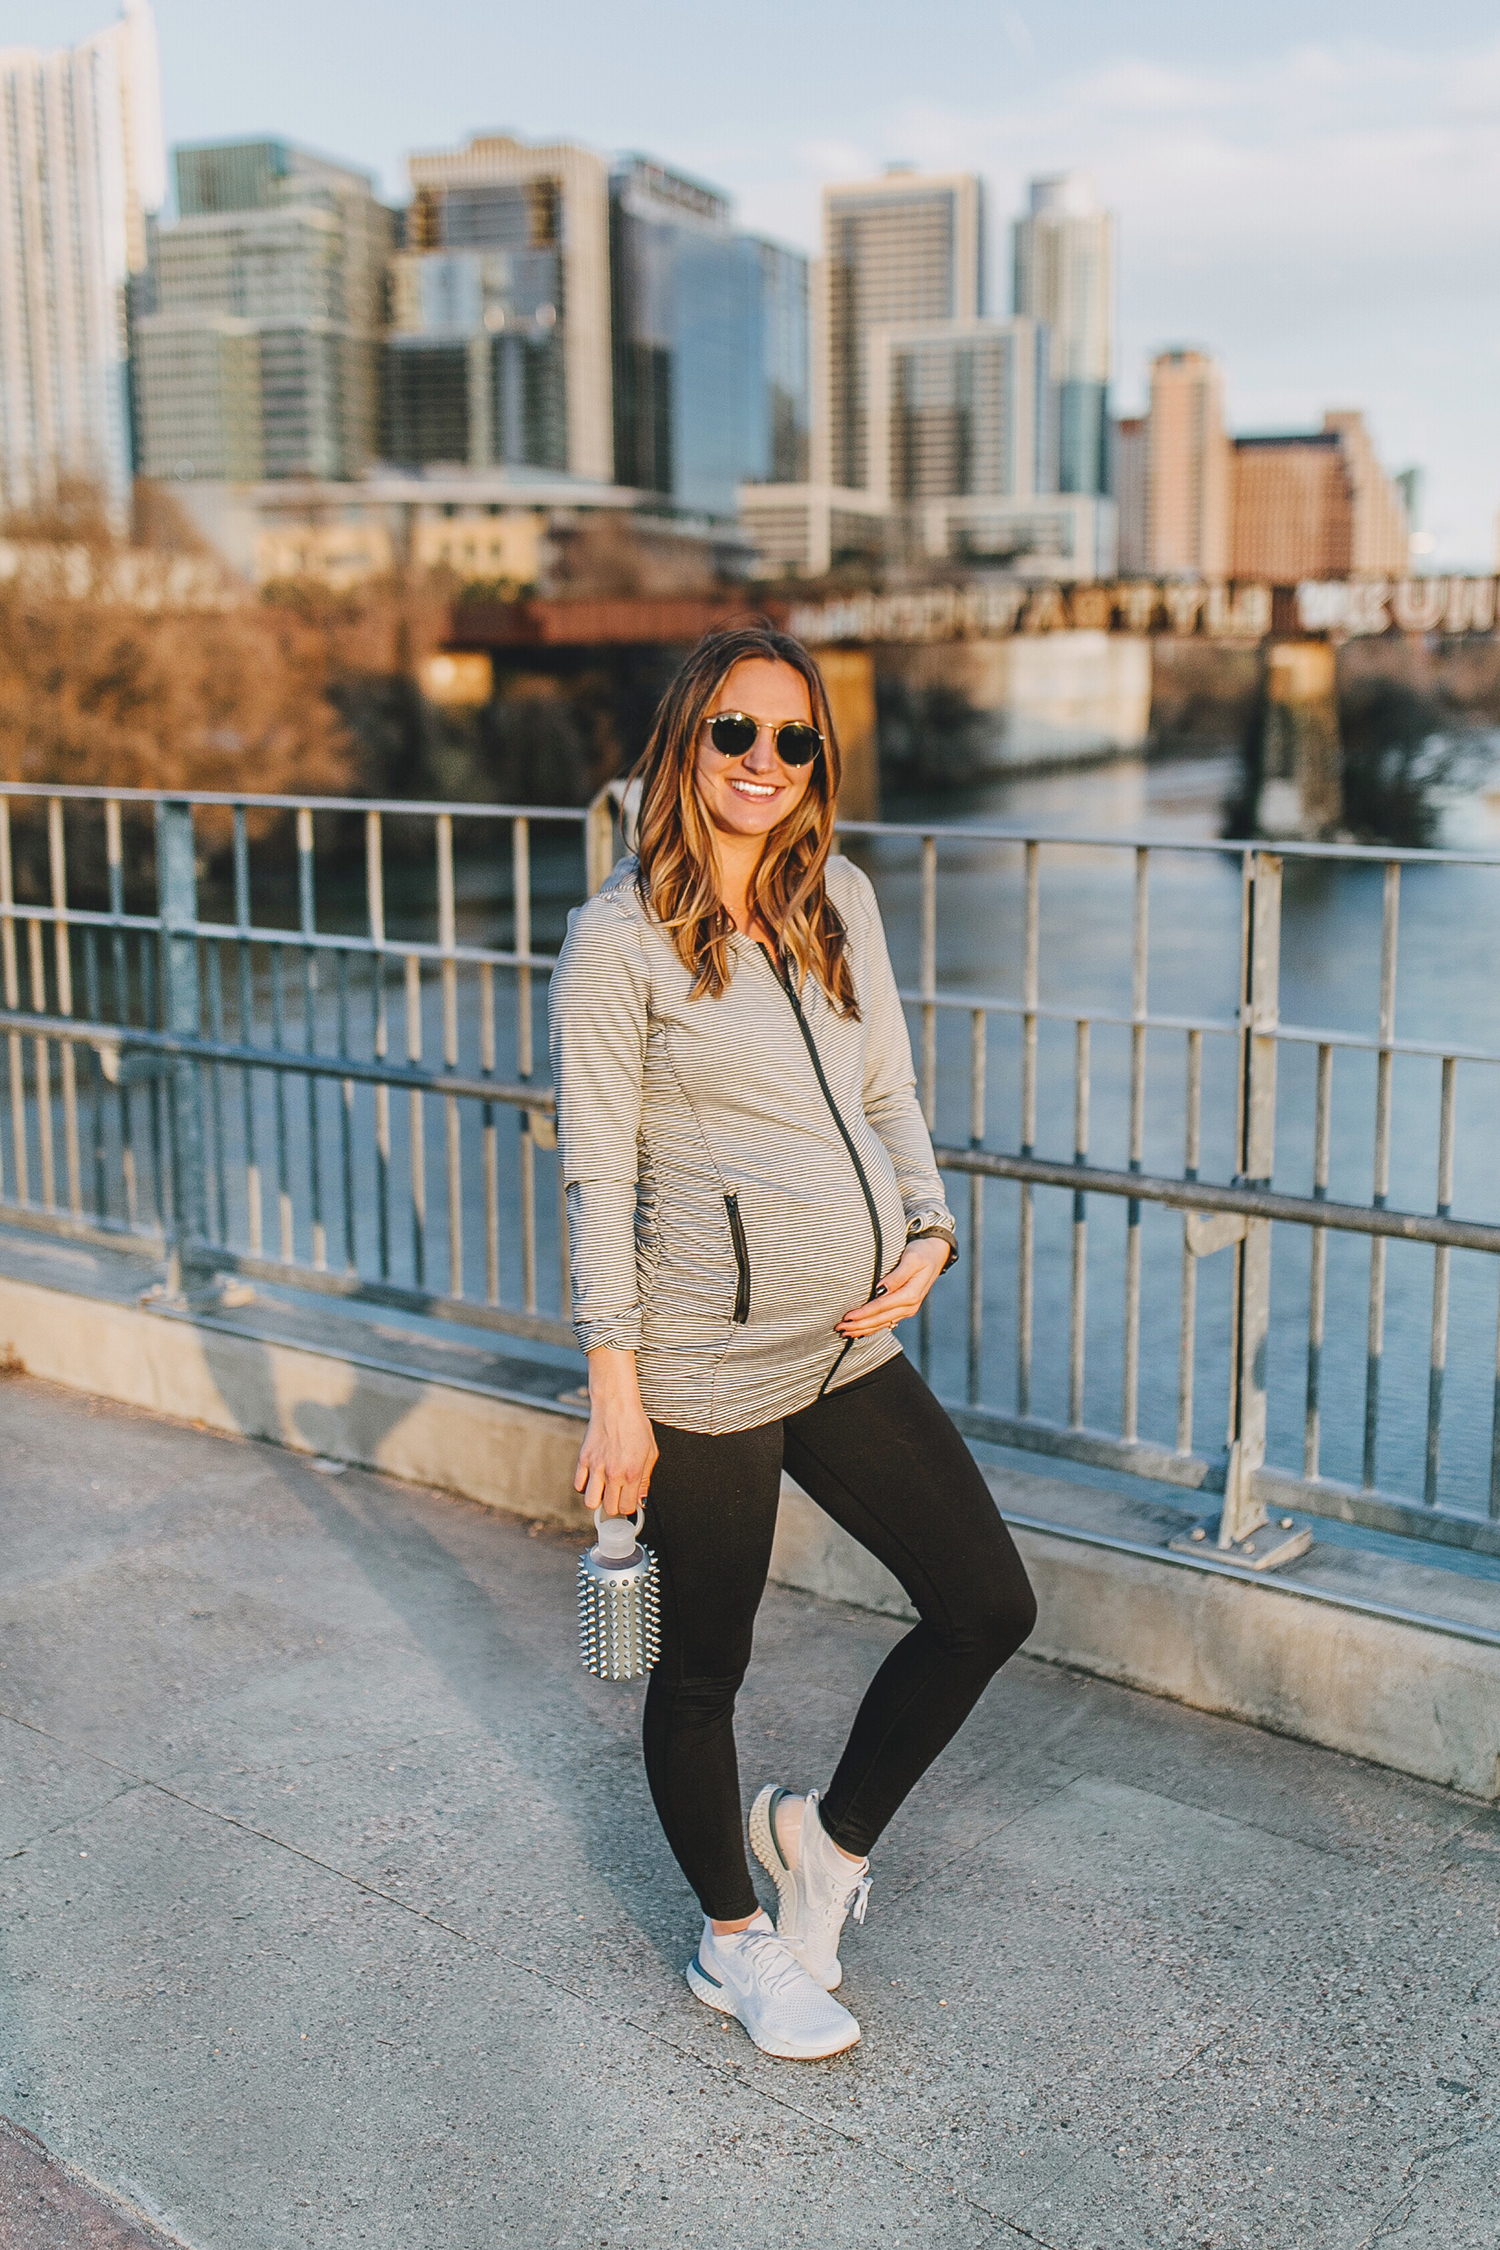 livvyland-blog-olivia-watson-austin-texas-lamar-bridge-maternity-pregnancy-workout-outfit-leggings-nordstrom-2